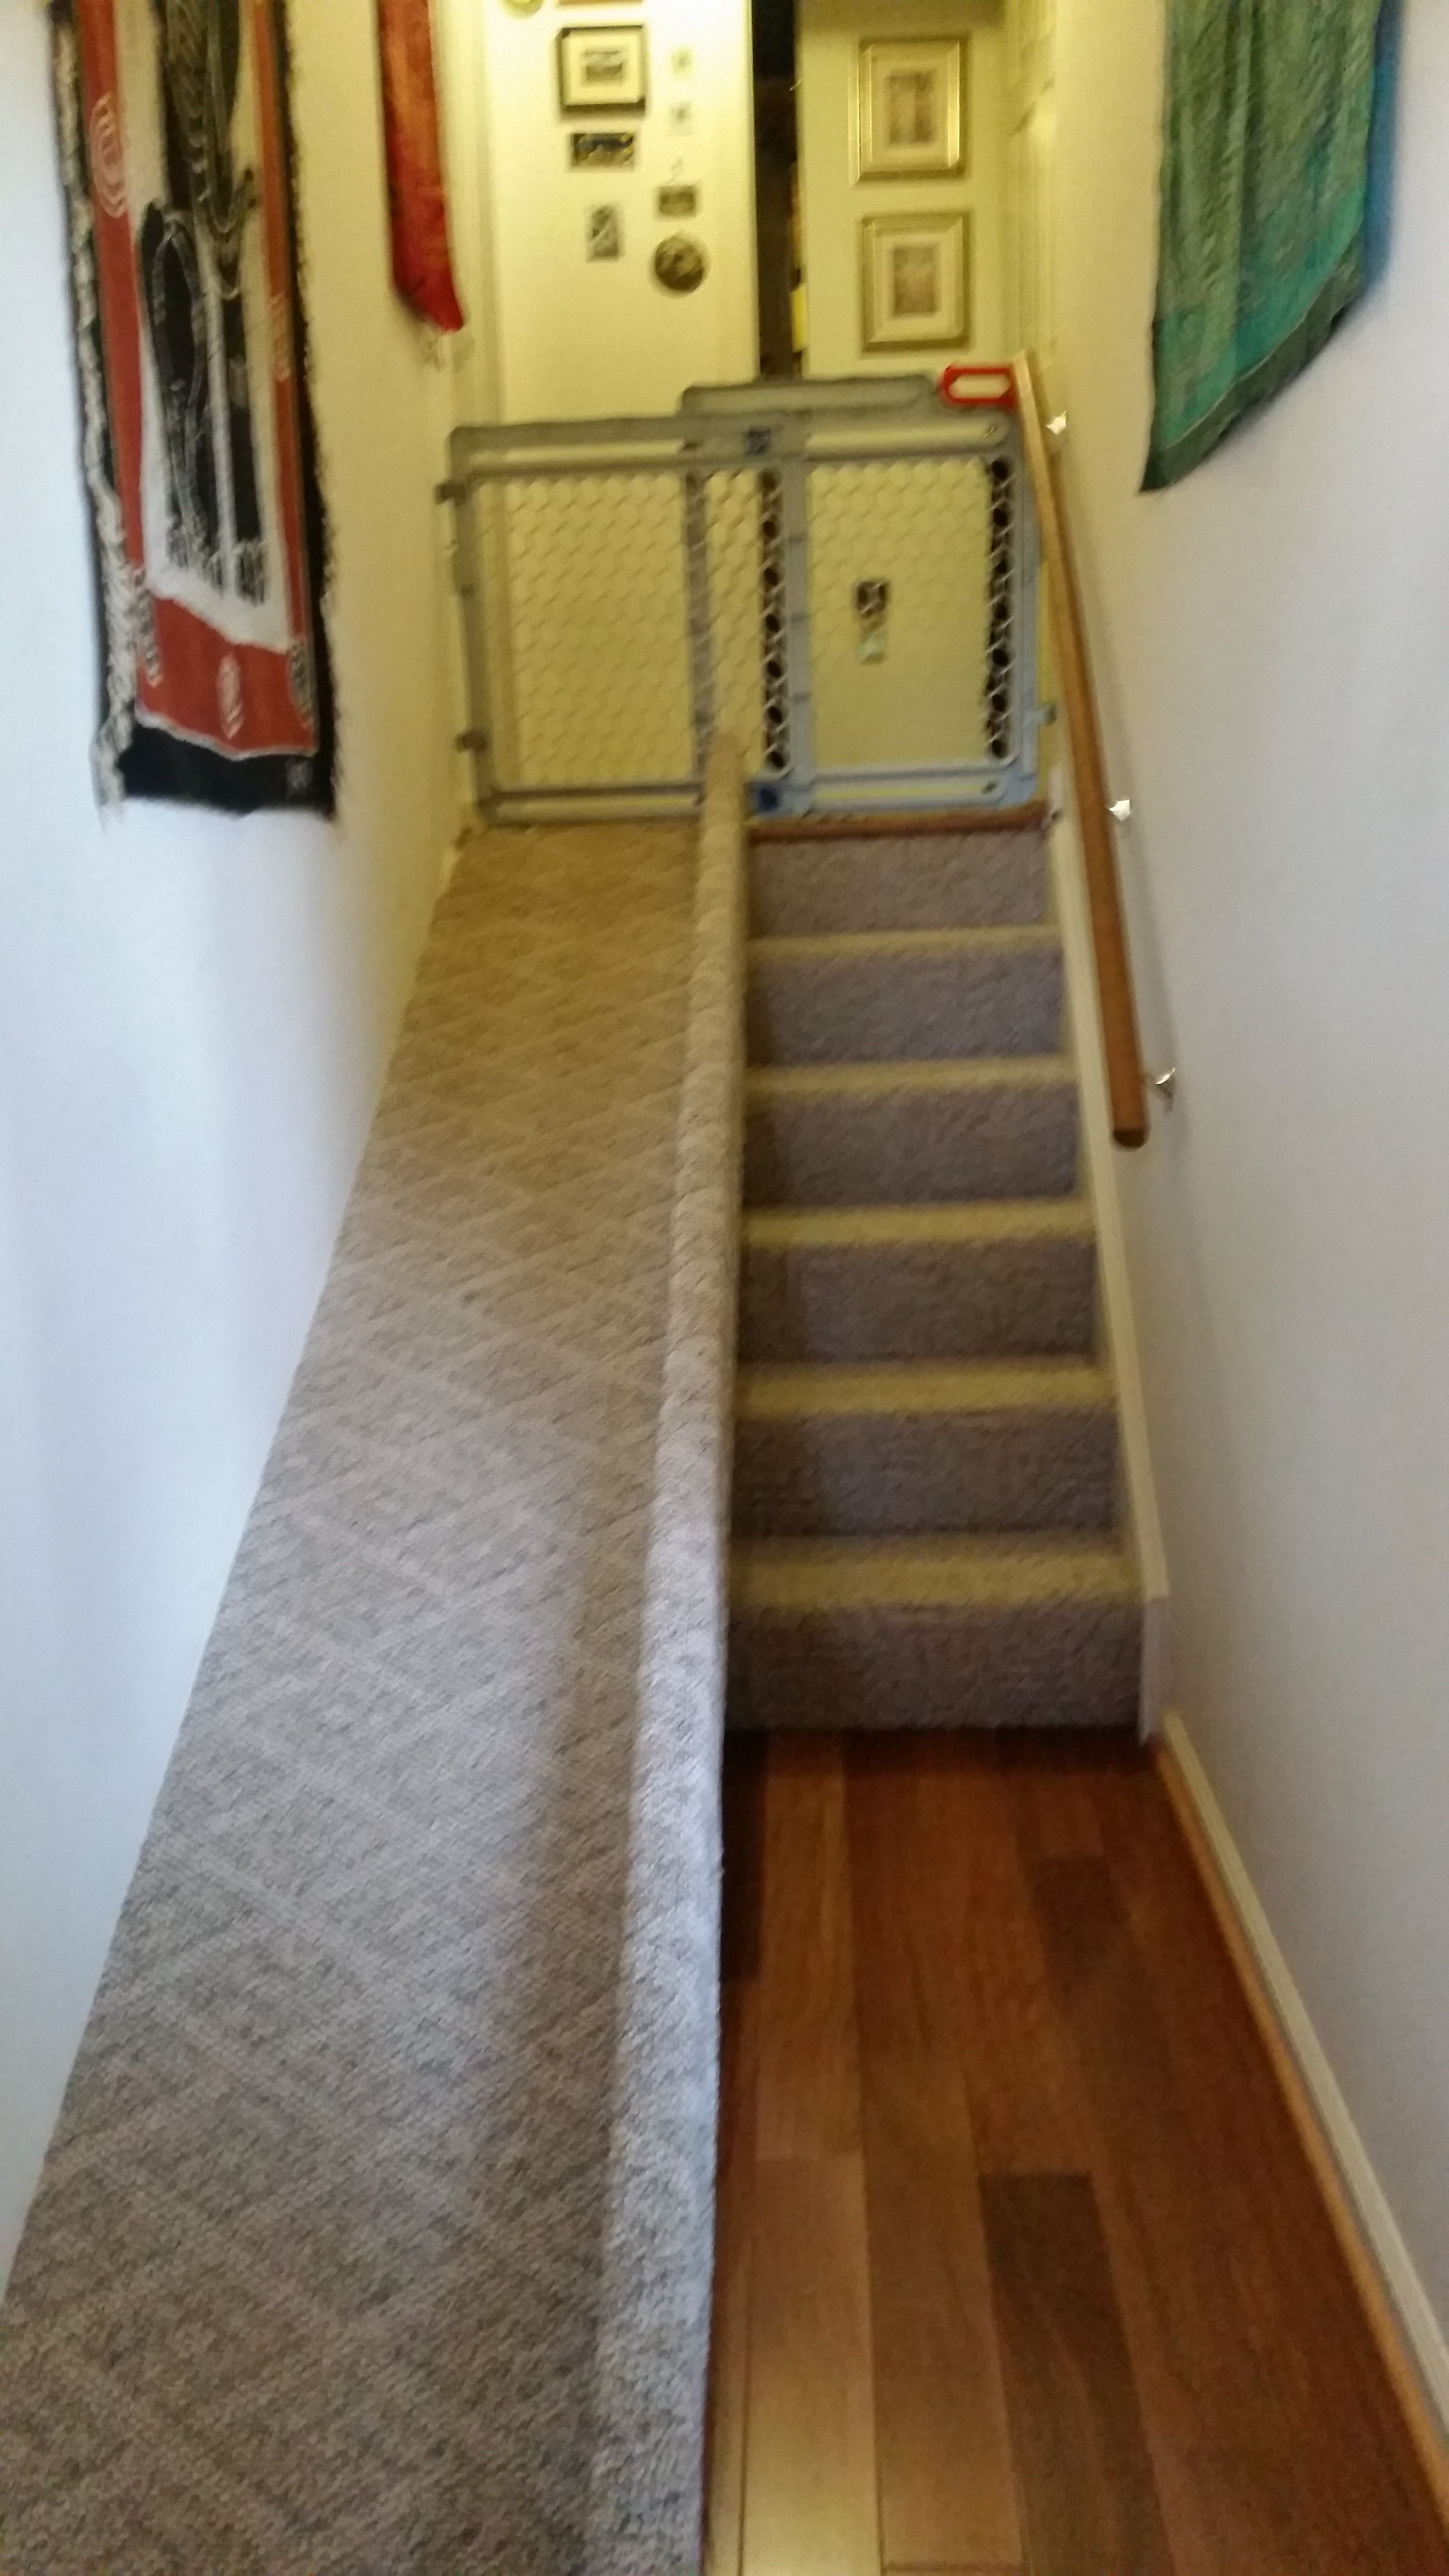 Ramp That A Client Built For Her Dog To Avoid Stairs